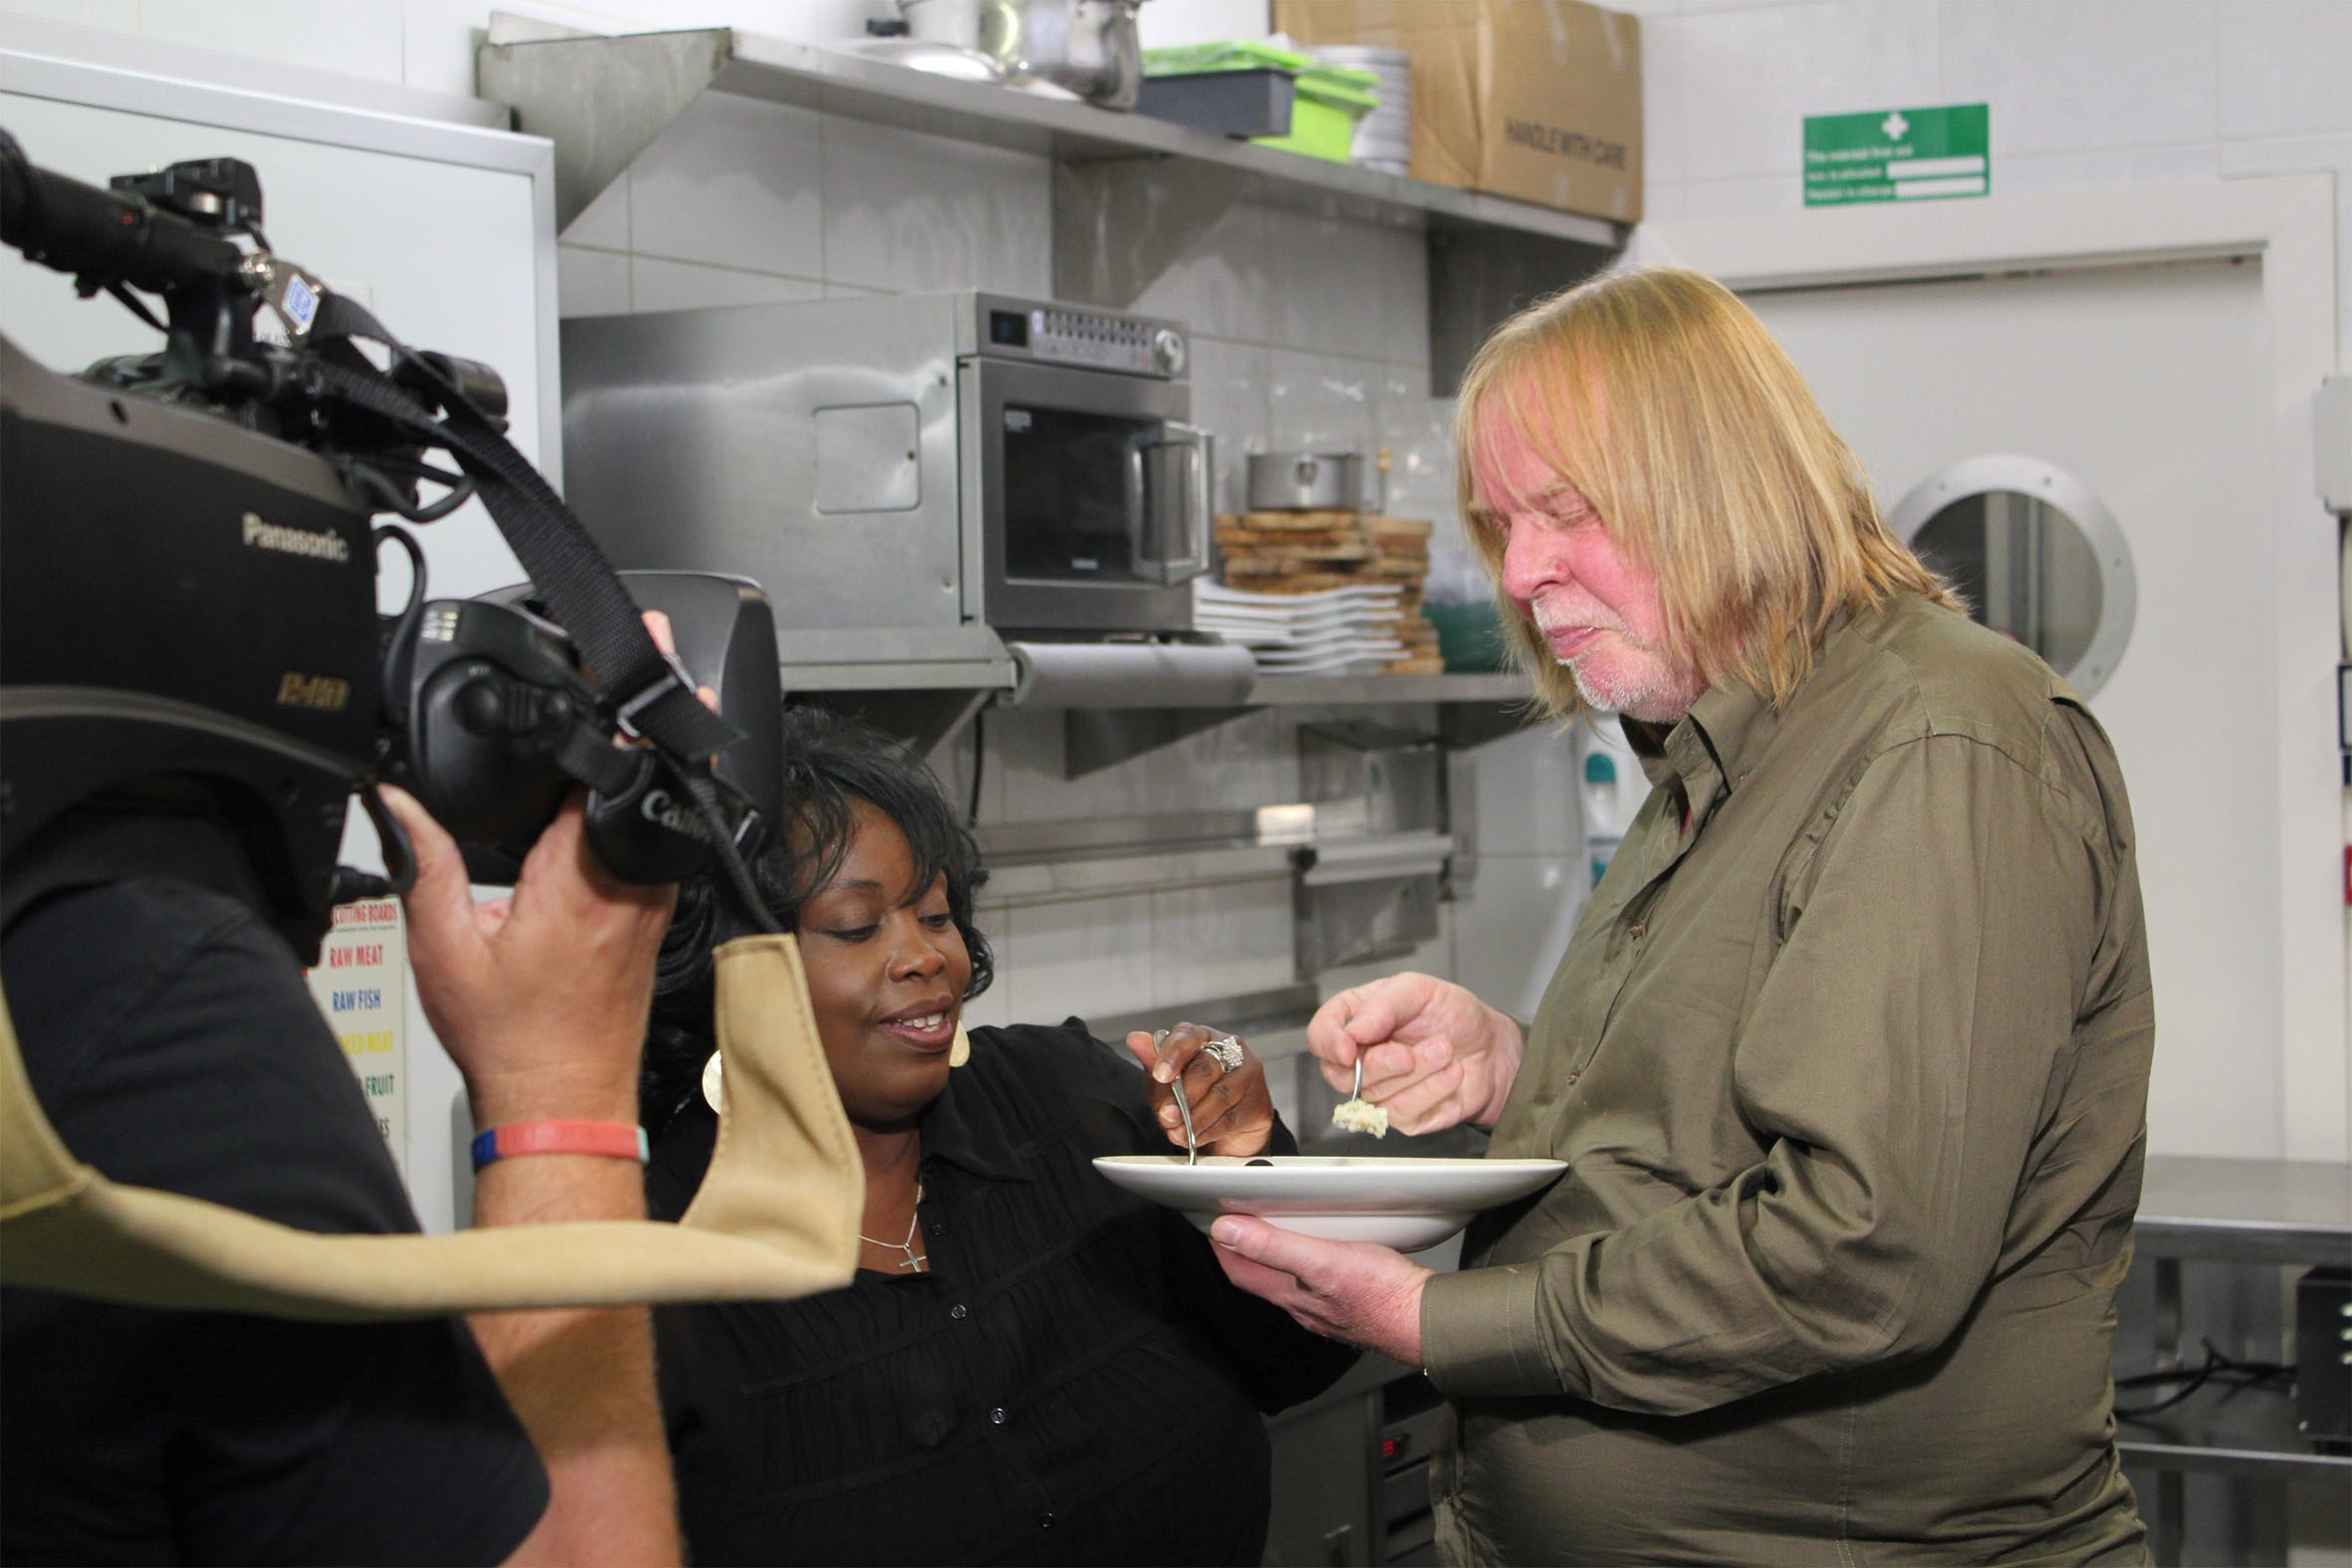 Ruby Turner and Rick Wakeman filming Soundbites.